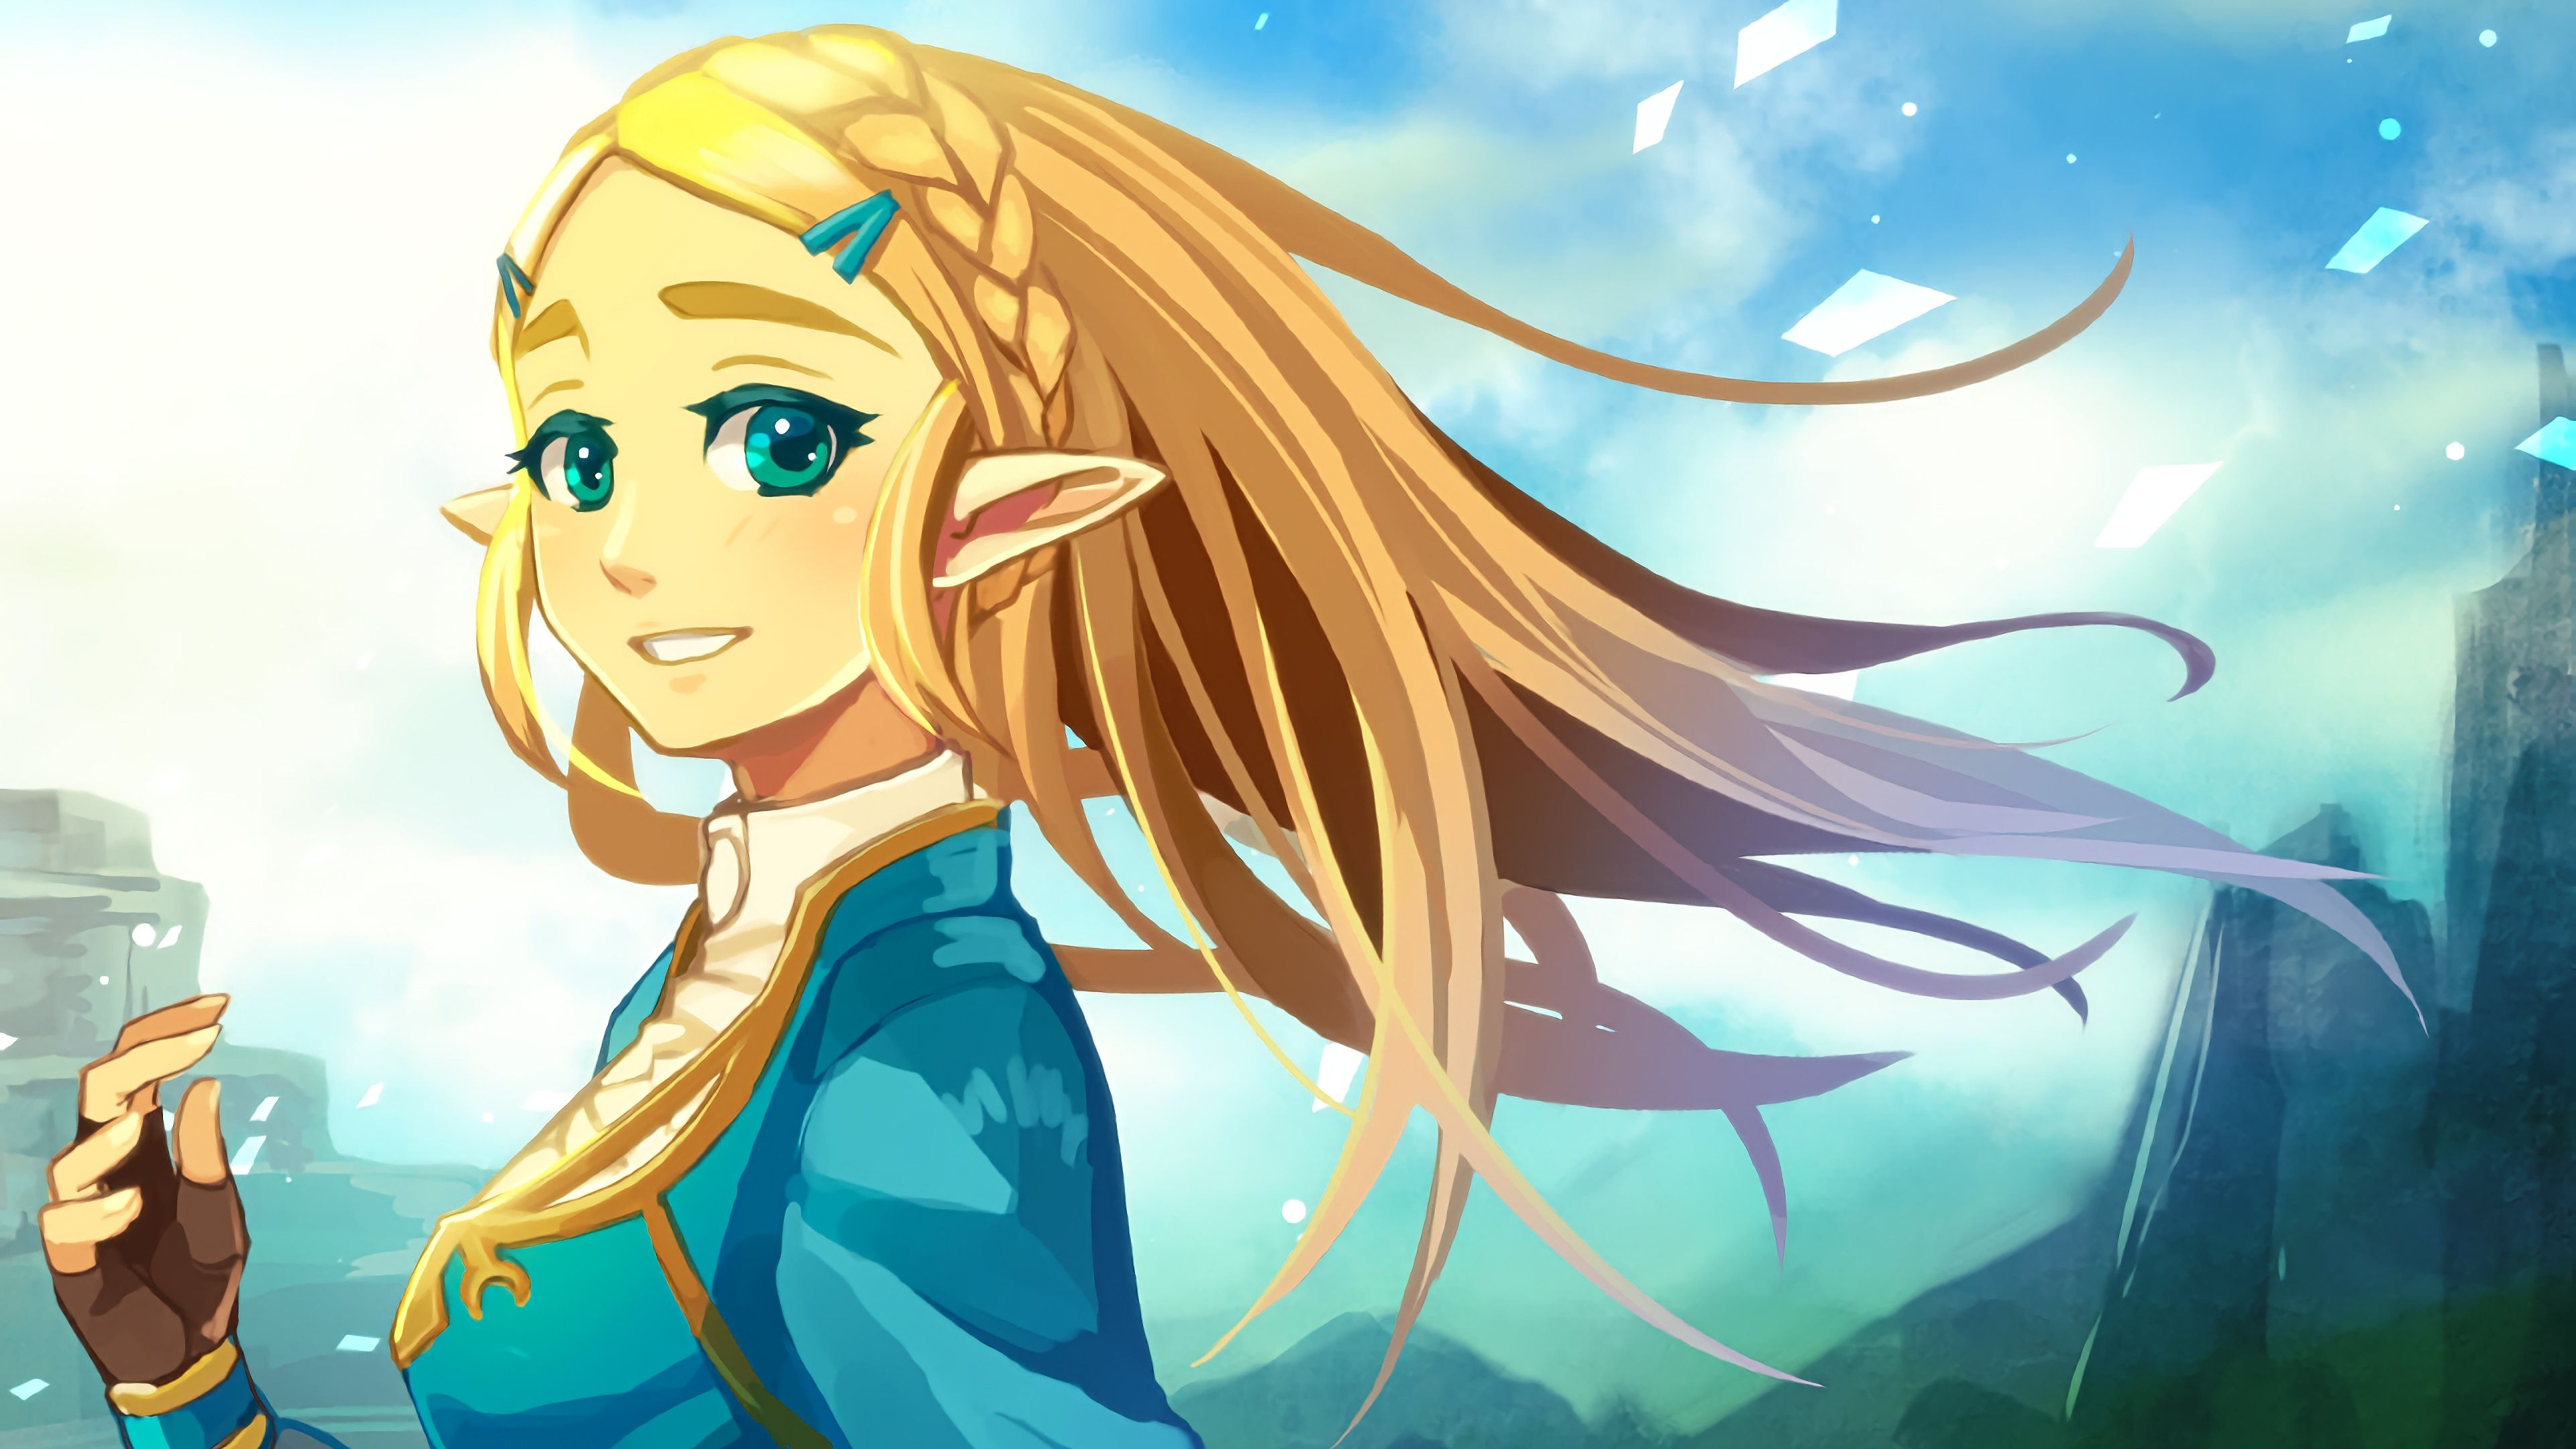 Pin by Oi Ling Wong on A-插畫601-650 in 2020 | Anime, Zelda